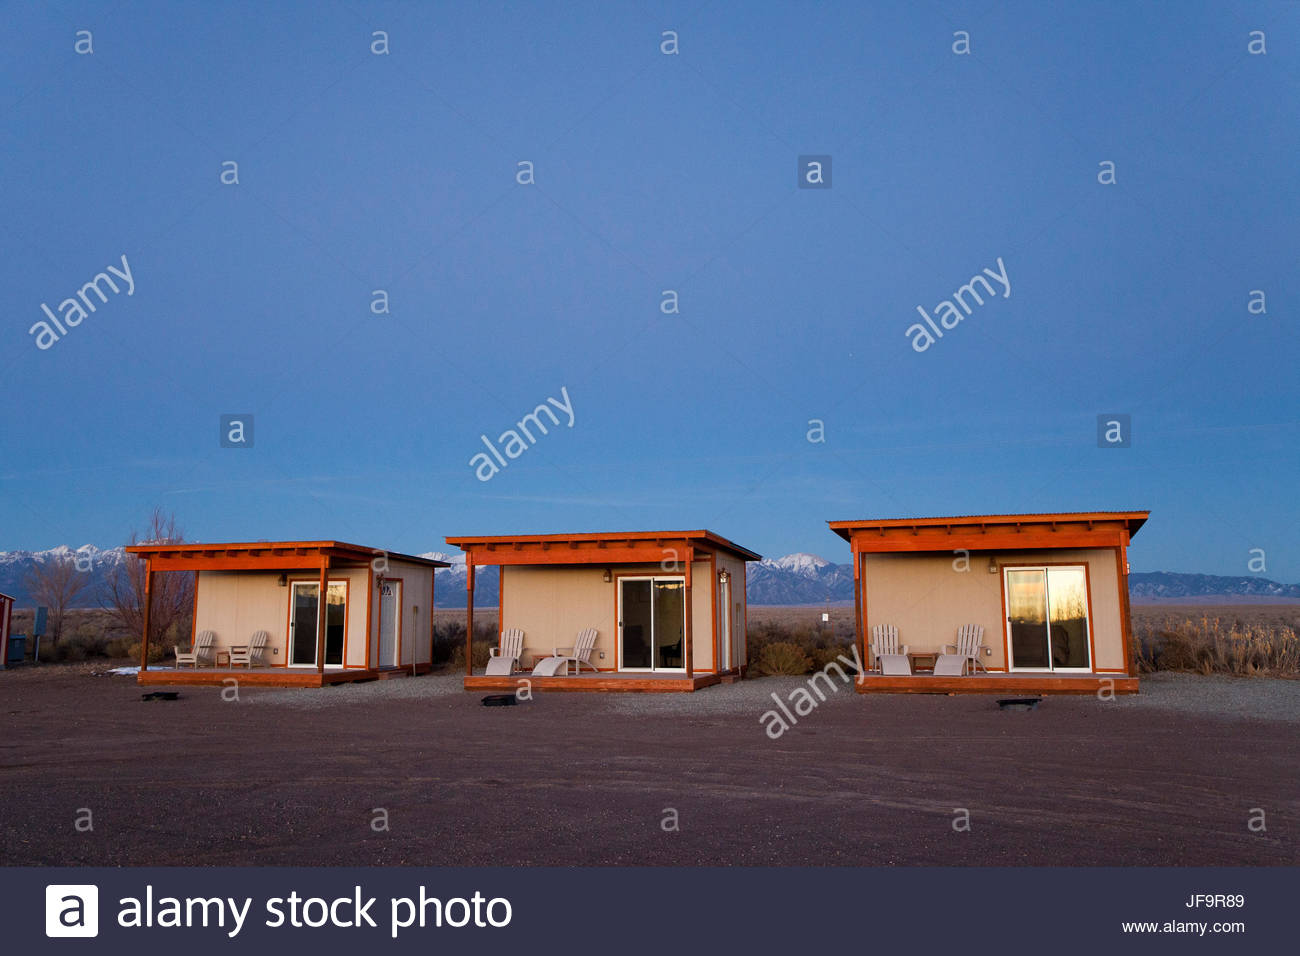 Tourist rental cabins at an RV campground in Hooper which